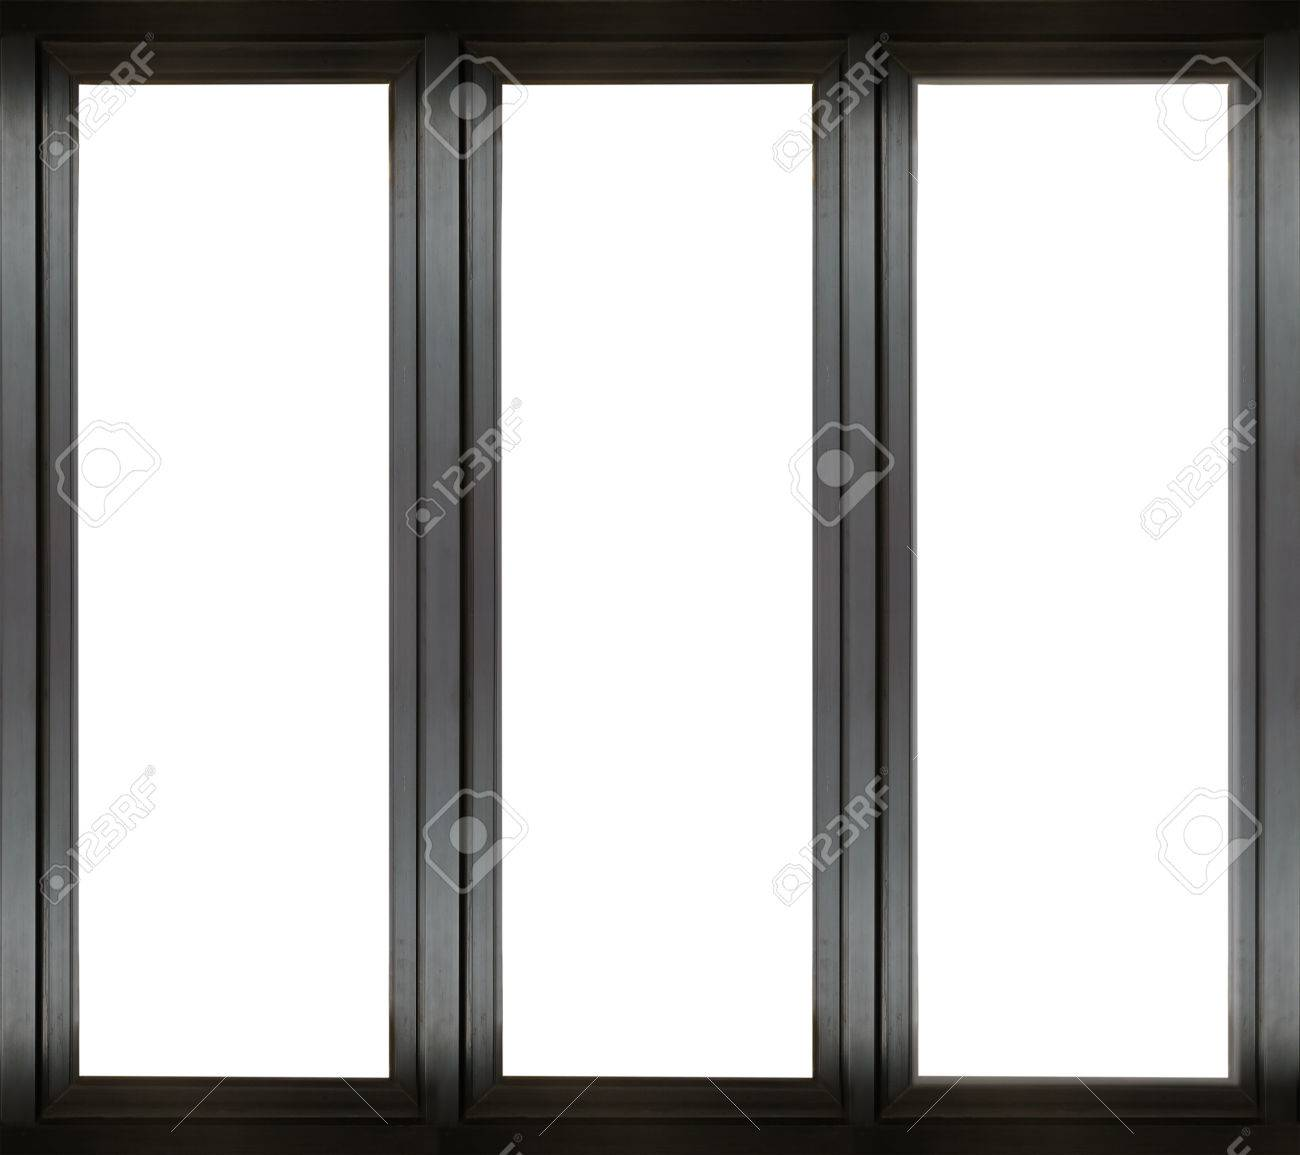 Black Metal Window Frame Stock Photo, Picture And Royalty Free Image ...